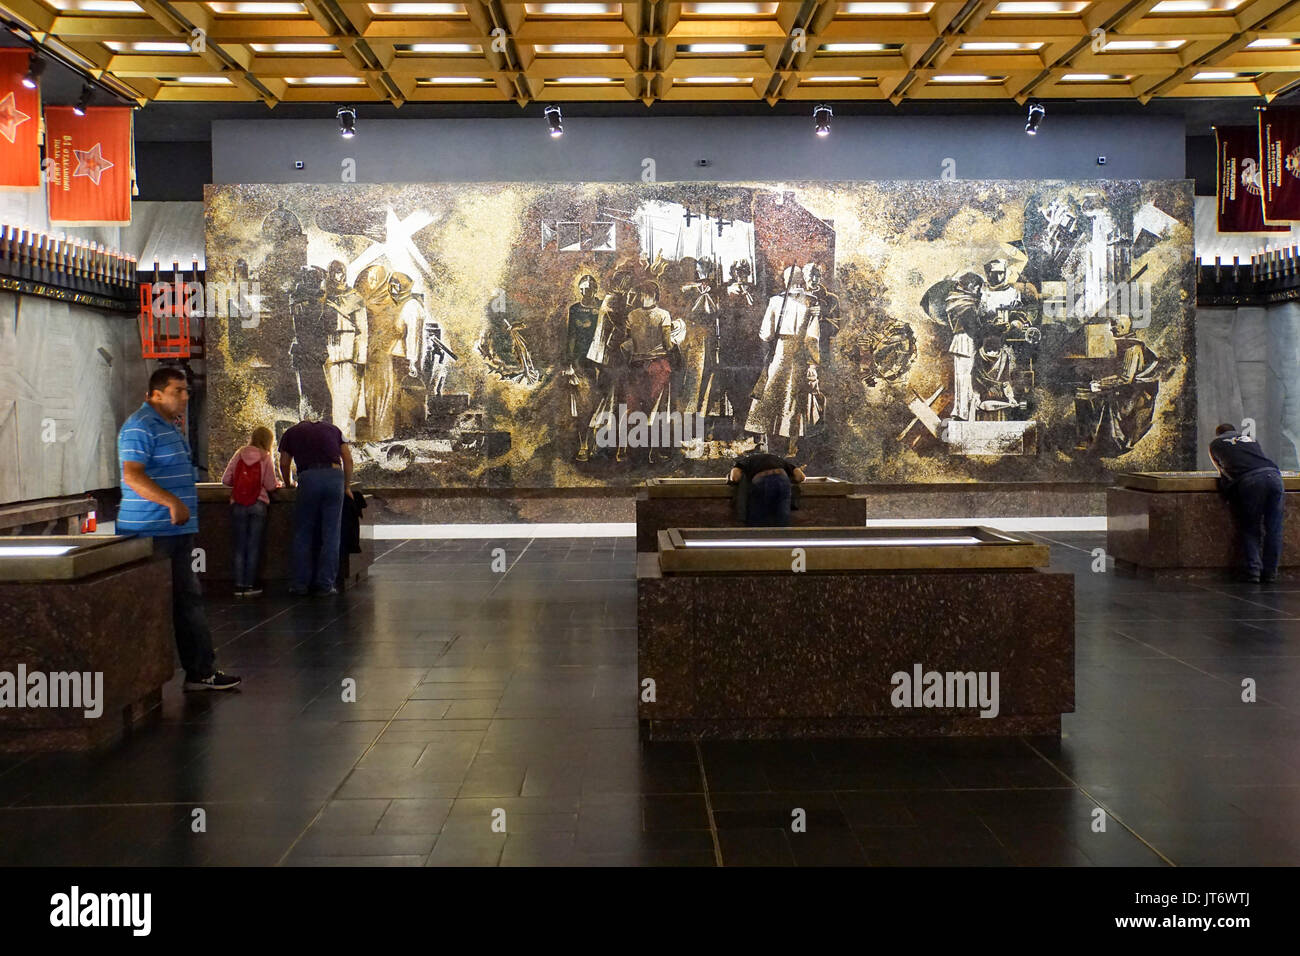 Inside the Monument to the Heroic Defenders of Leningrad at the Victory Square in Saint Petersburg, Russia - Stock Image